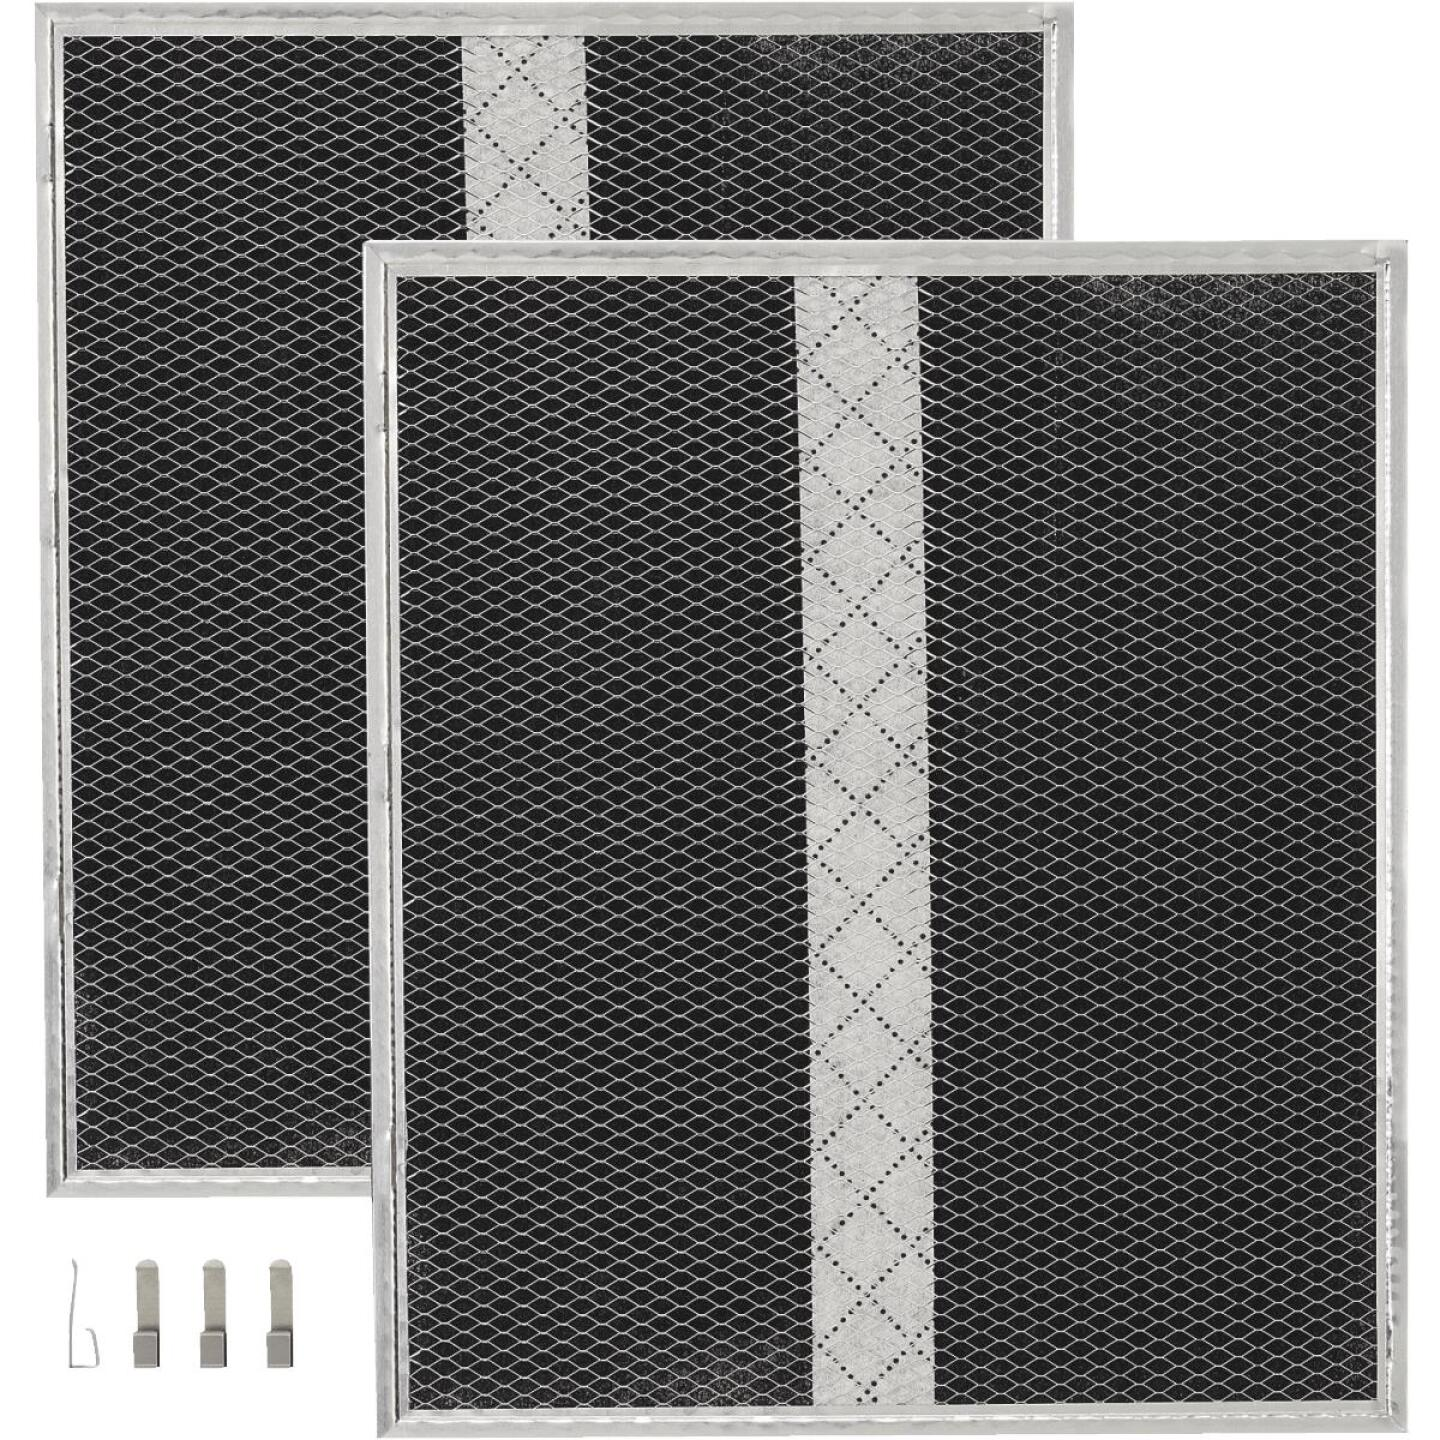 Broan-Nutone Non-Ducted Charcoal Range Hood Filter (2-Pack) Image 1